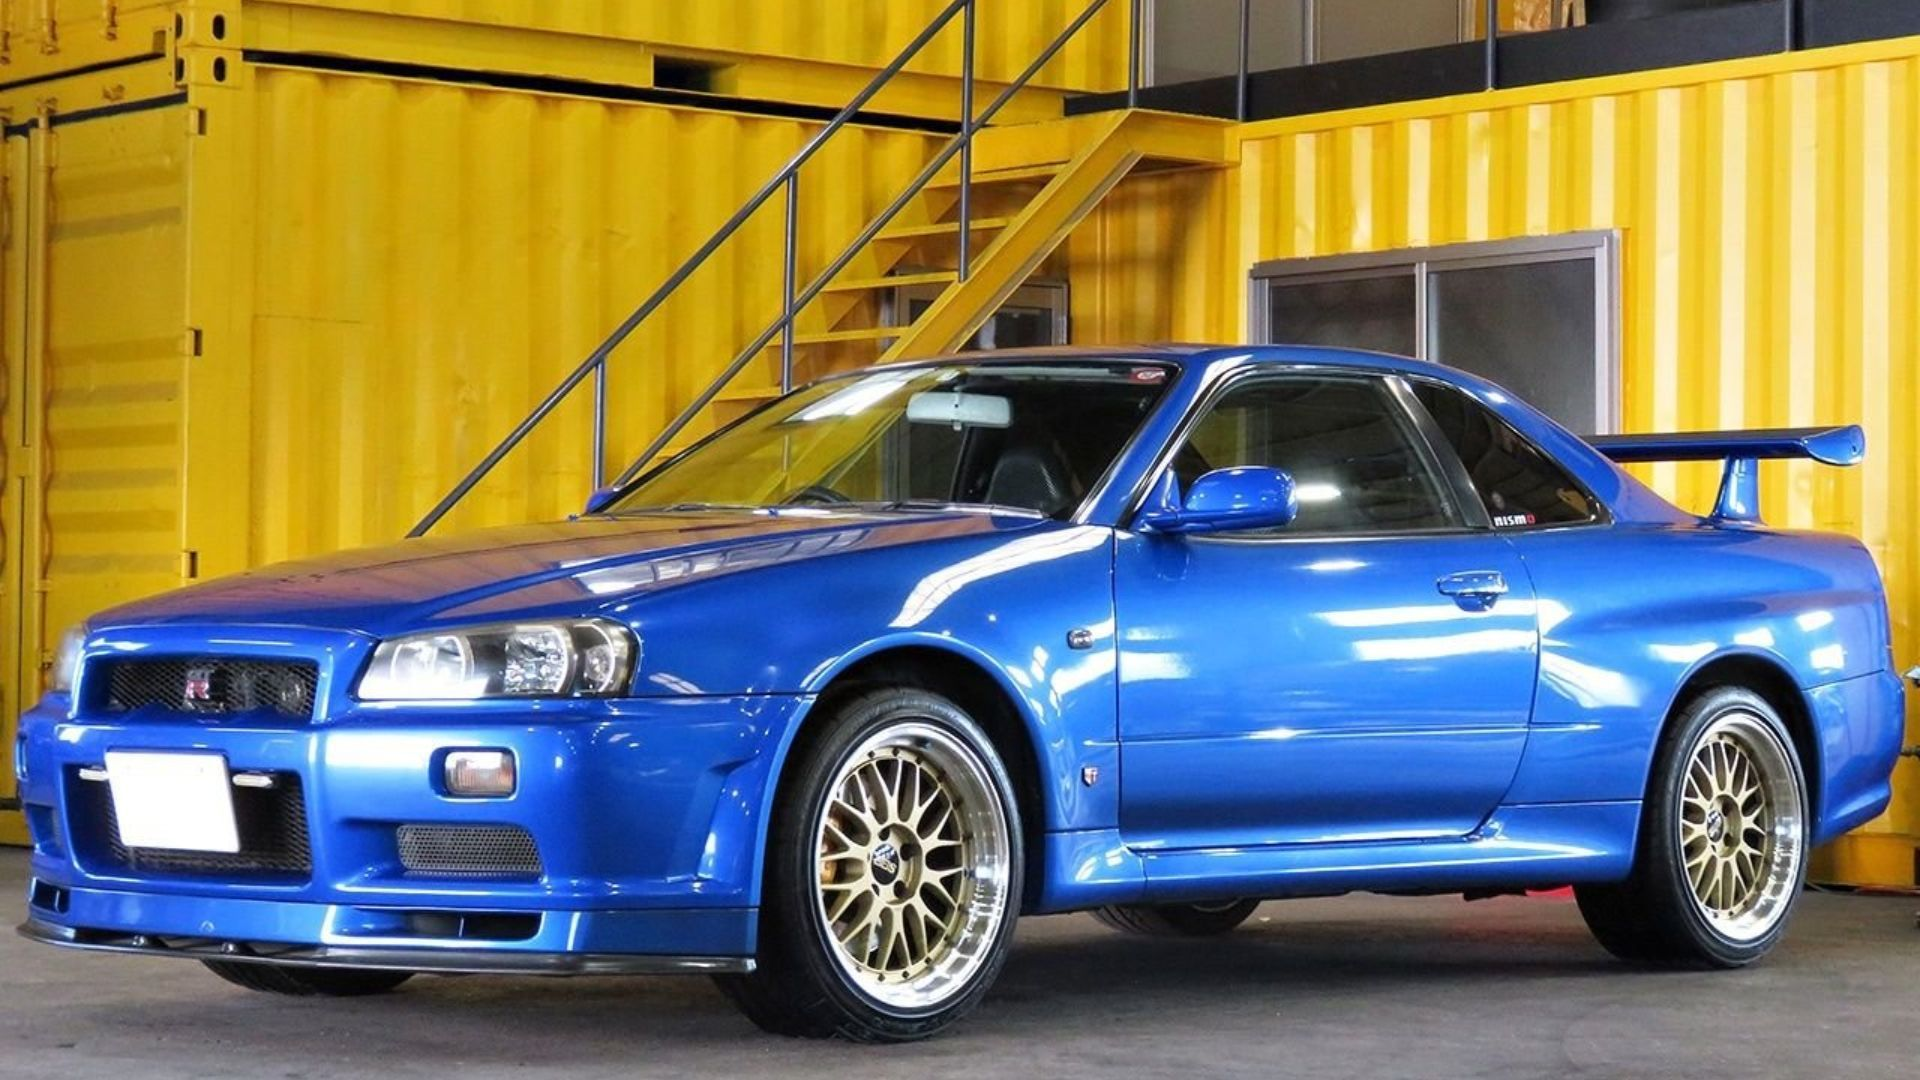 8 Coolest JDM Cars On Motorious